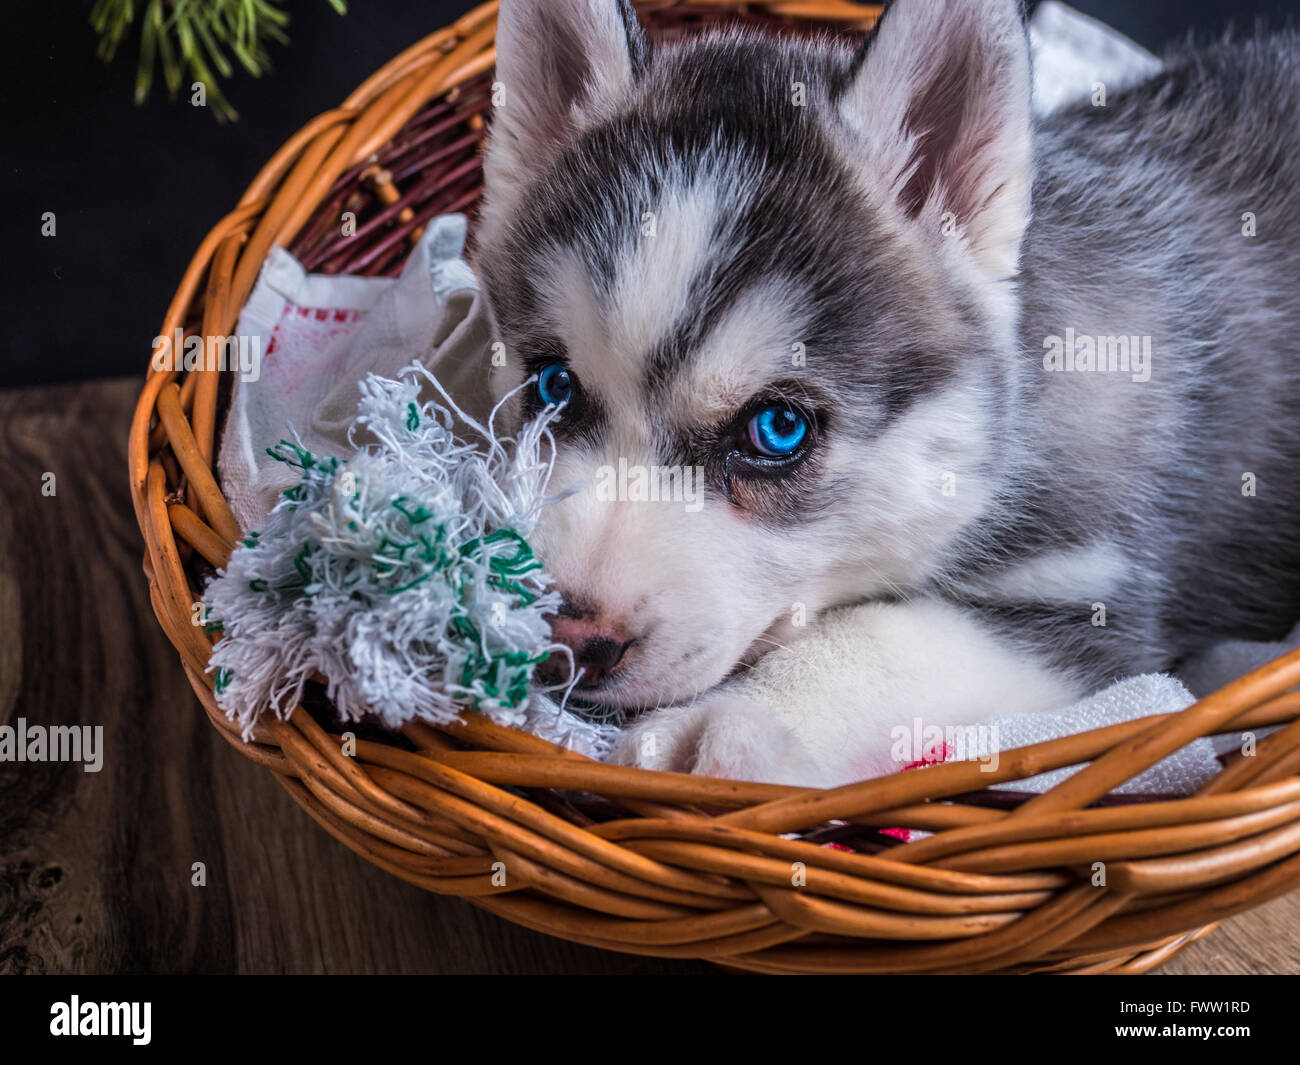 Cute Siberian Husky Puppy With Blue Eyes In The Basket